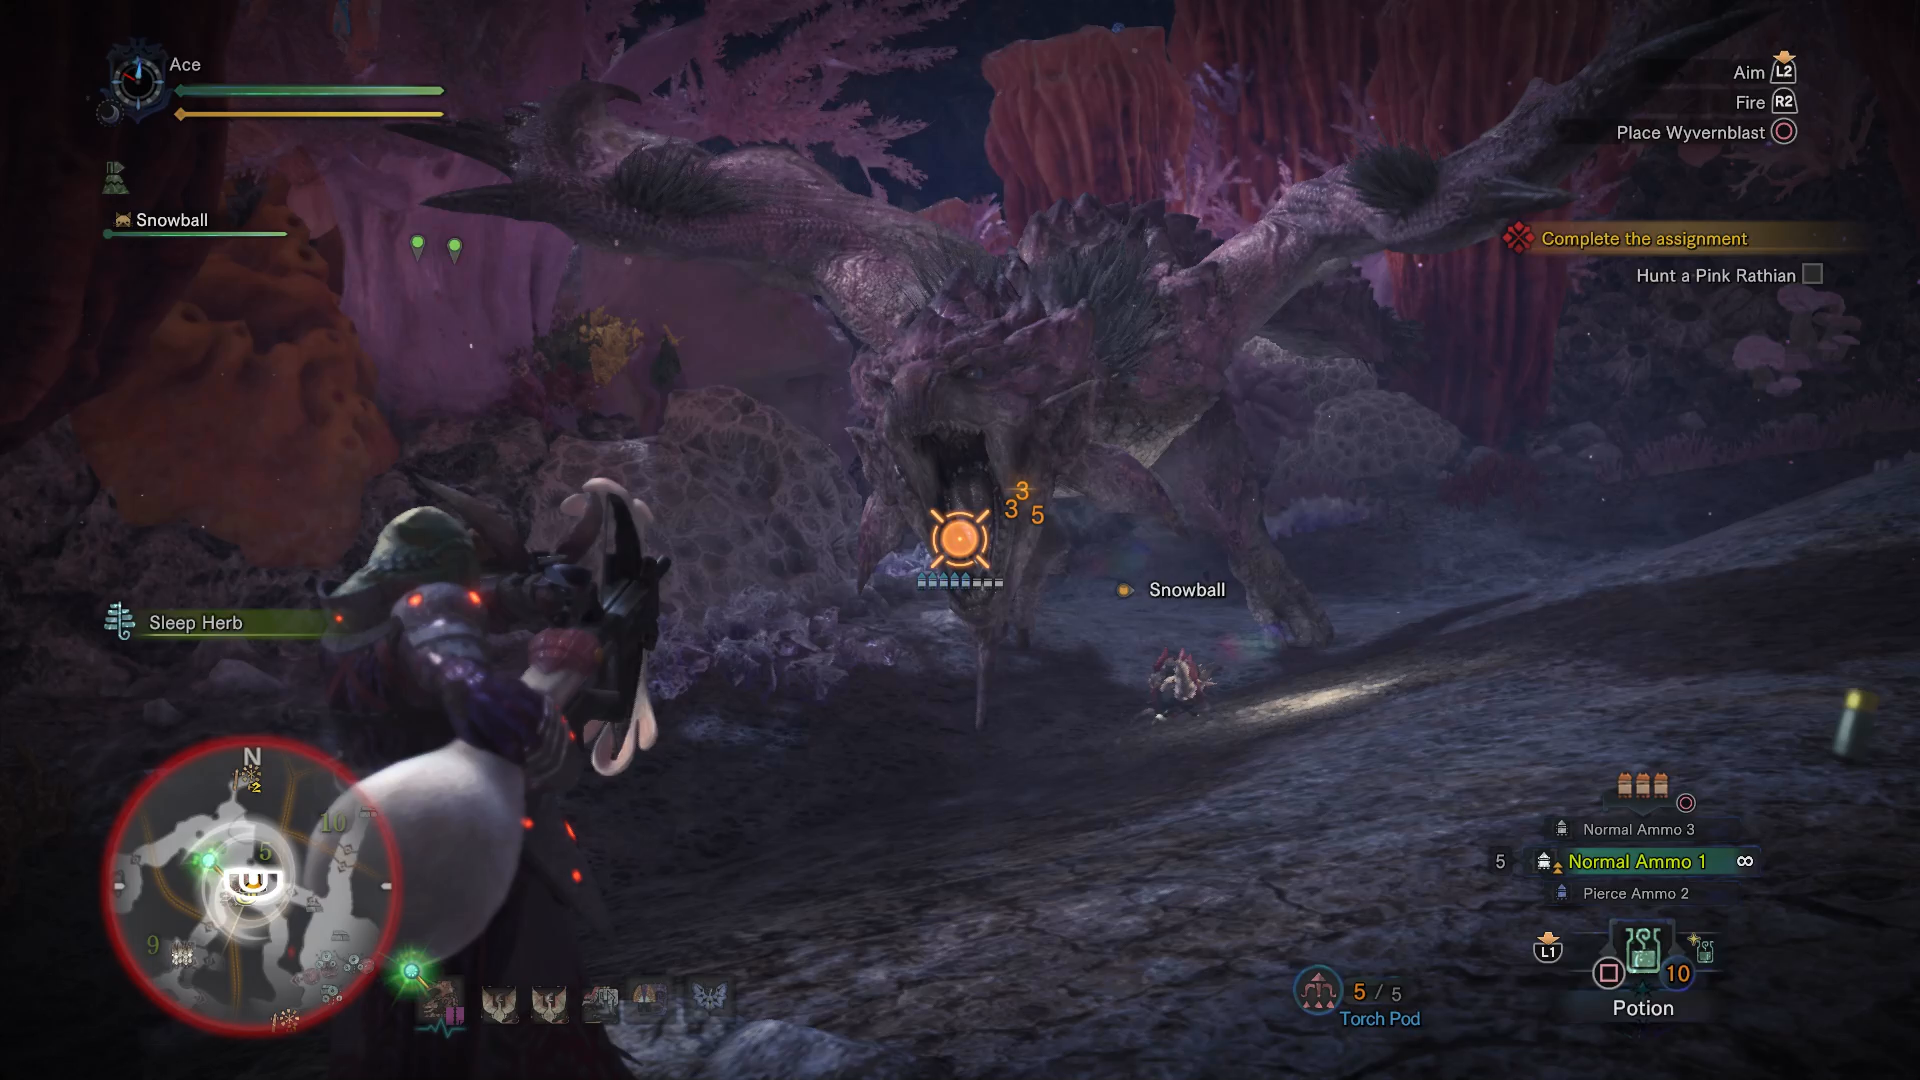 Monster Hunter World Pink Rathian - How to Track and Kill